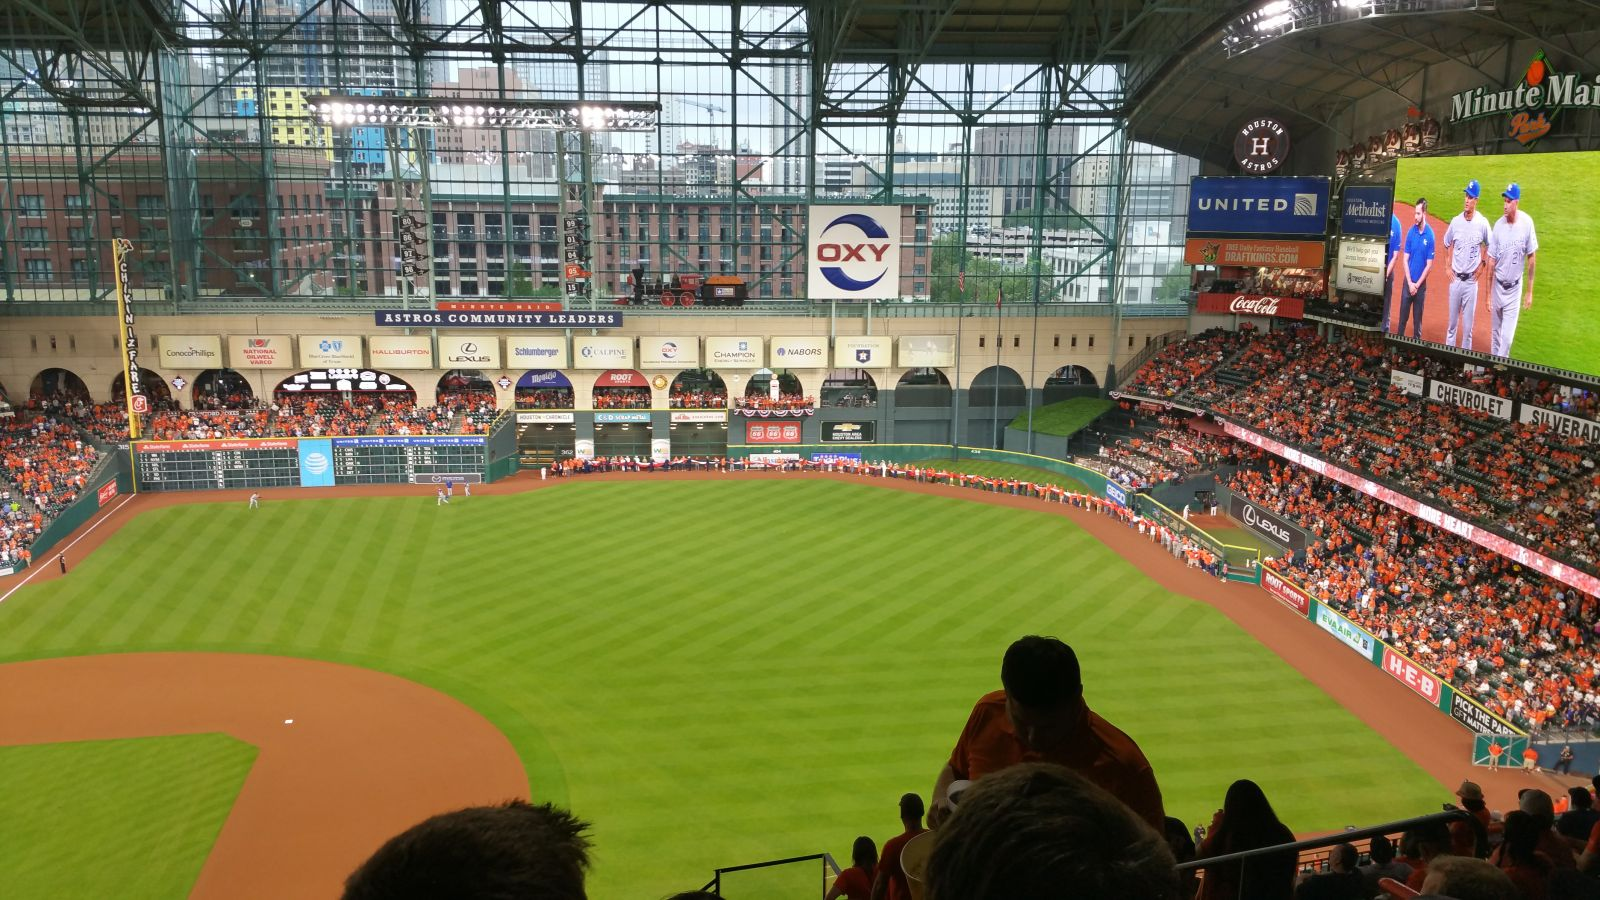 Seat View for Minute Maid Park Section 427, Row 12, Seat 18